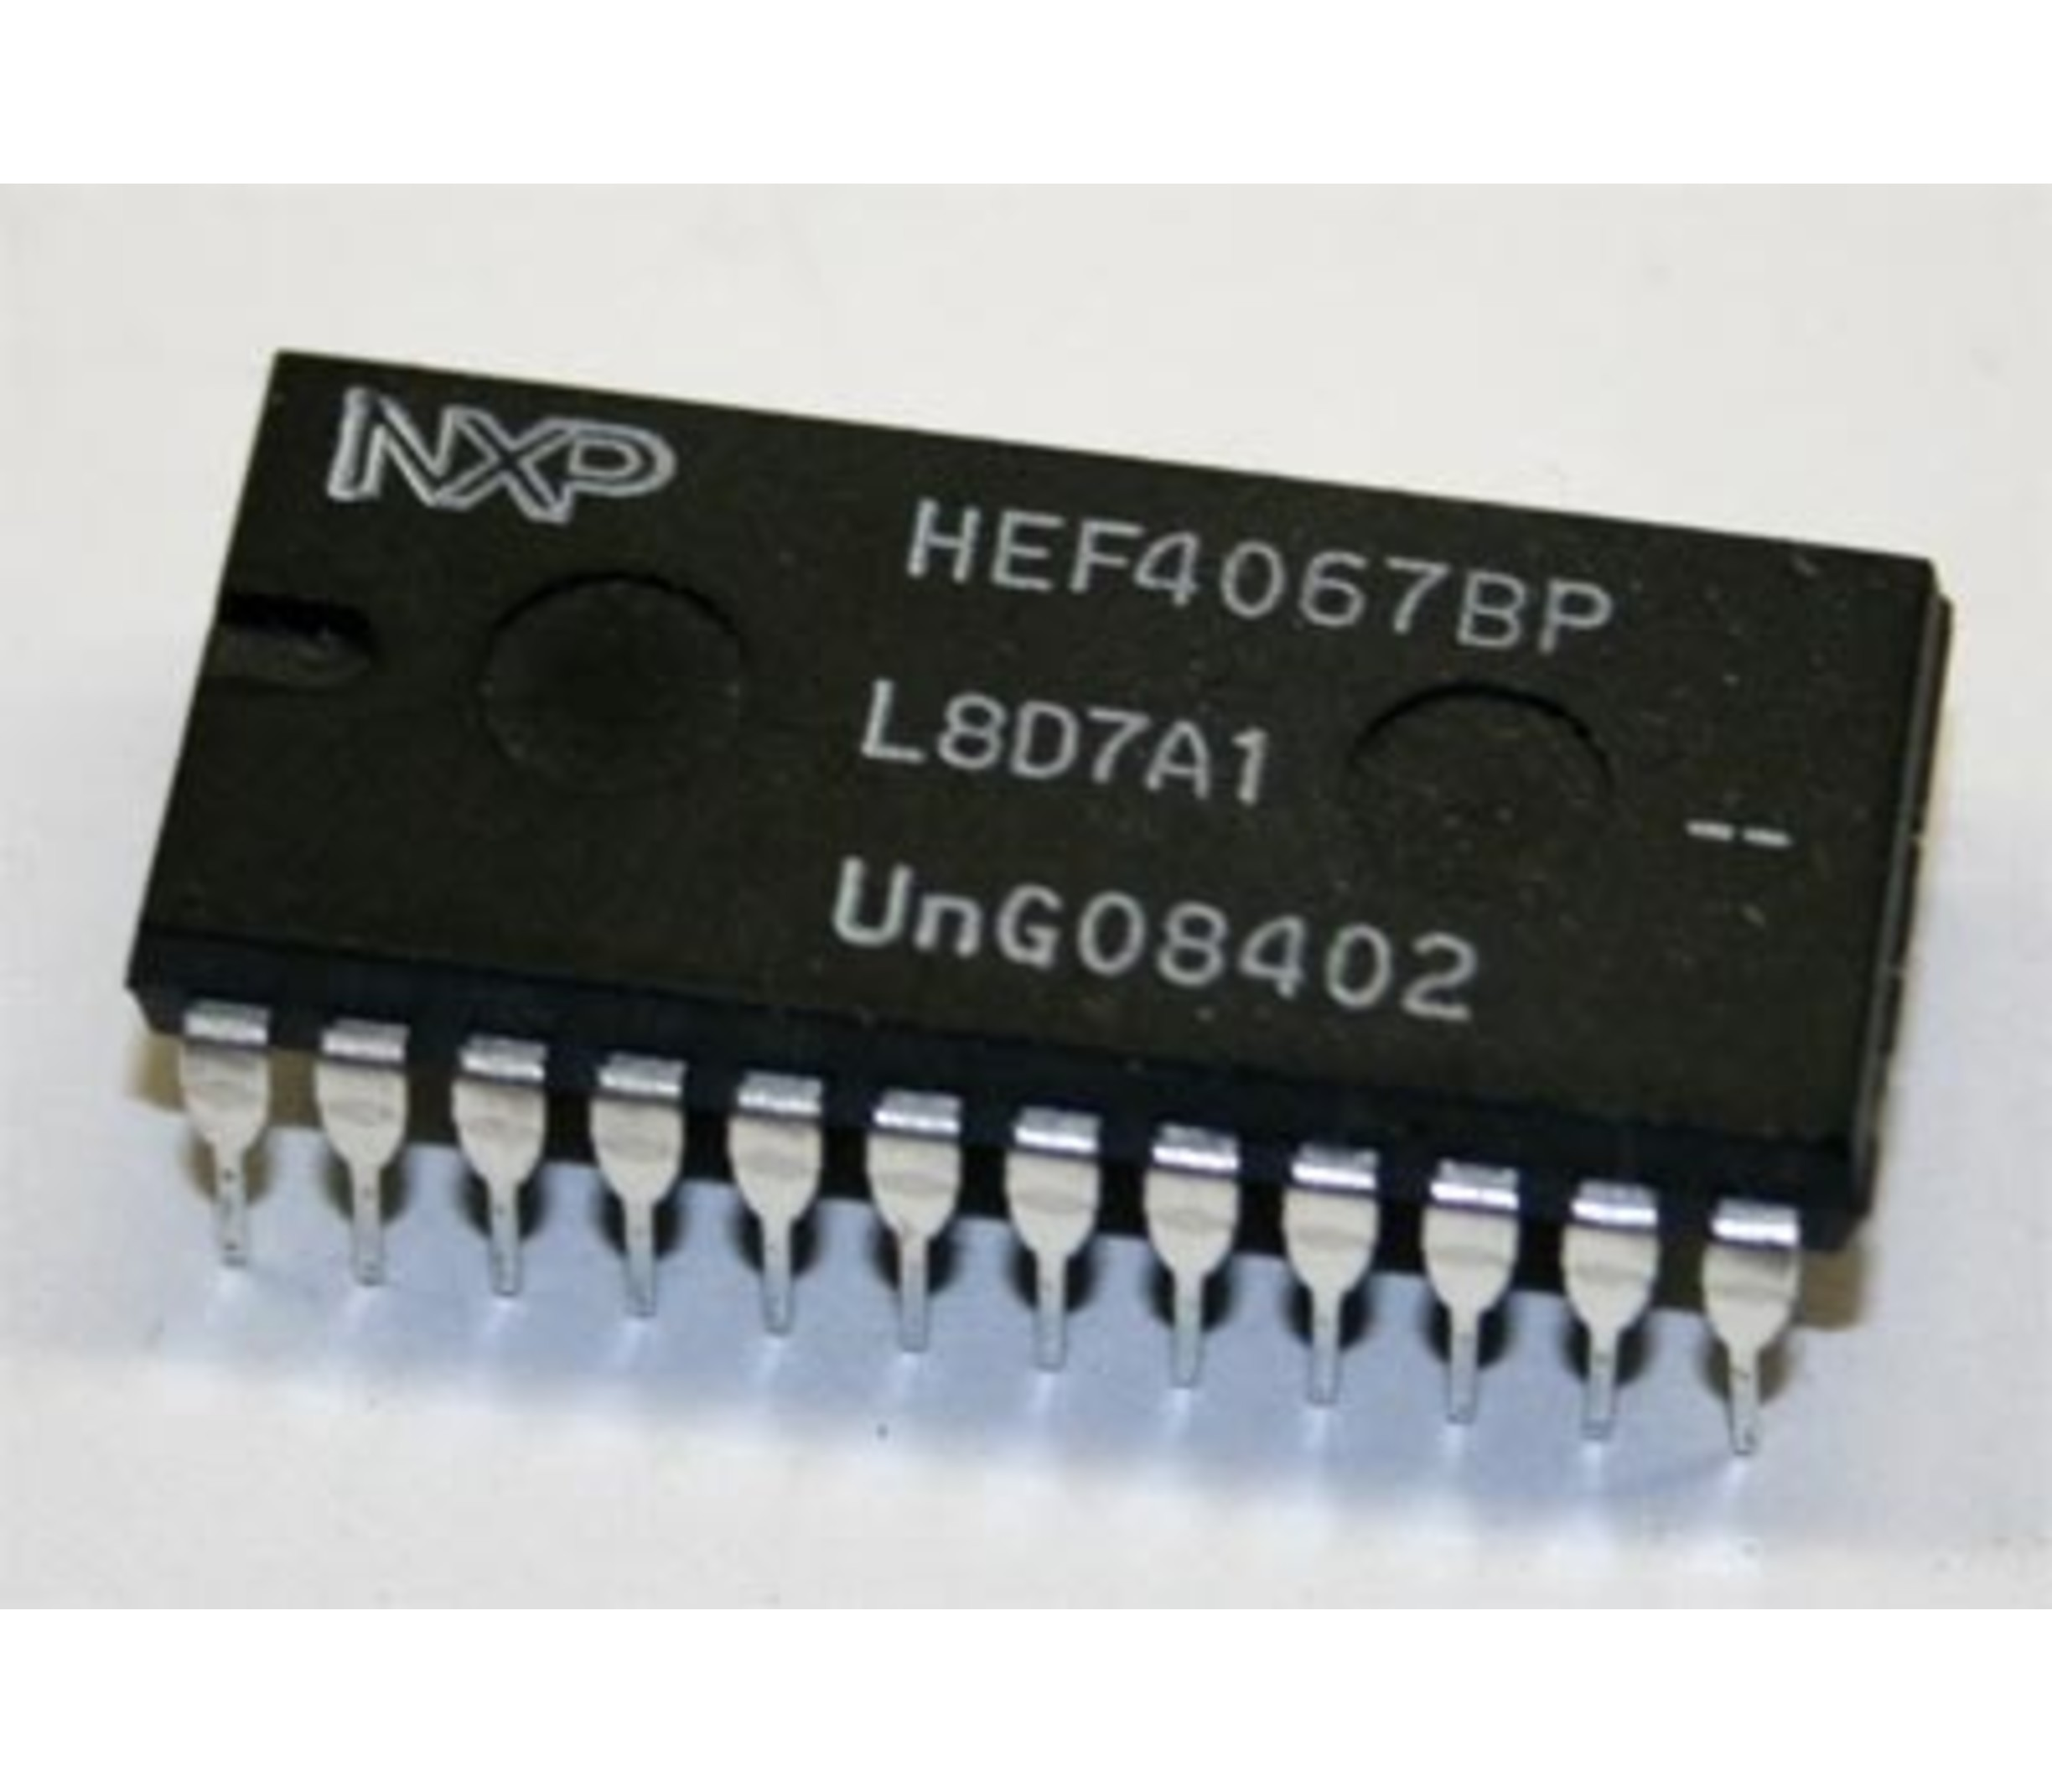 HEF4067BP input expansion chip